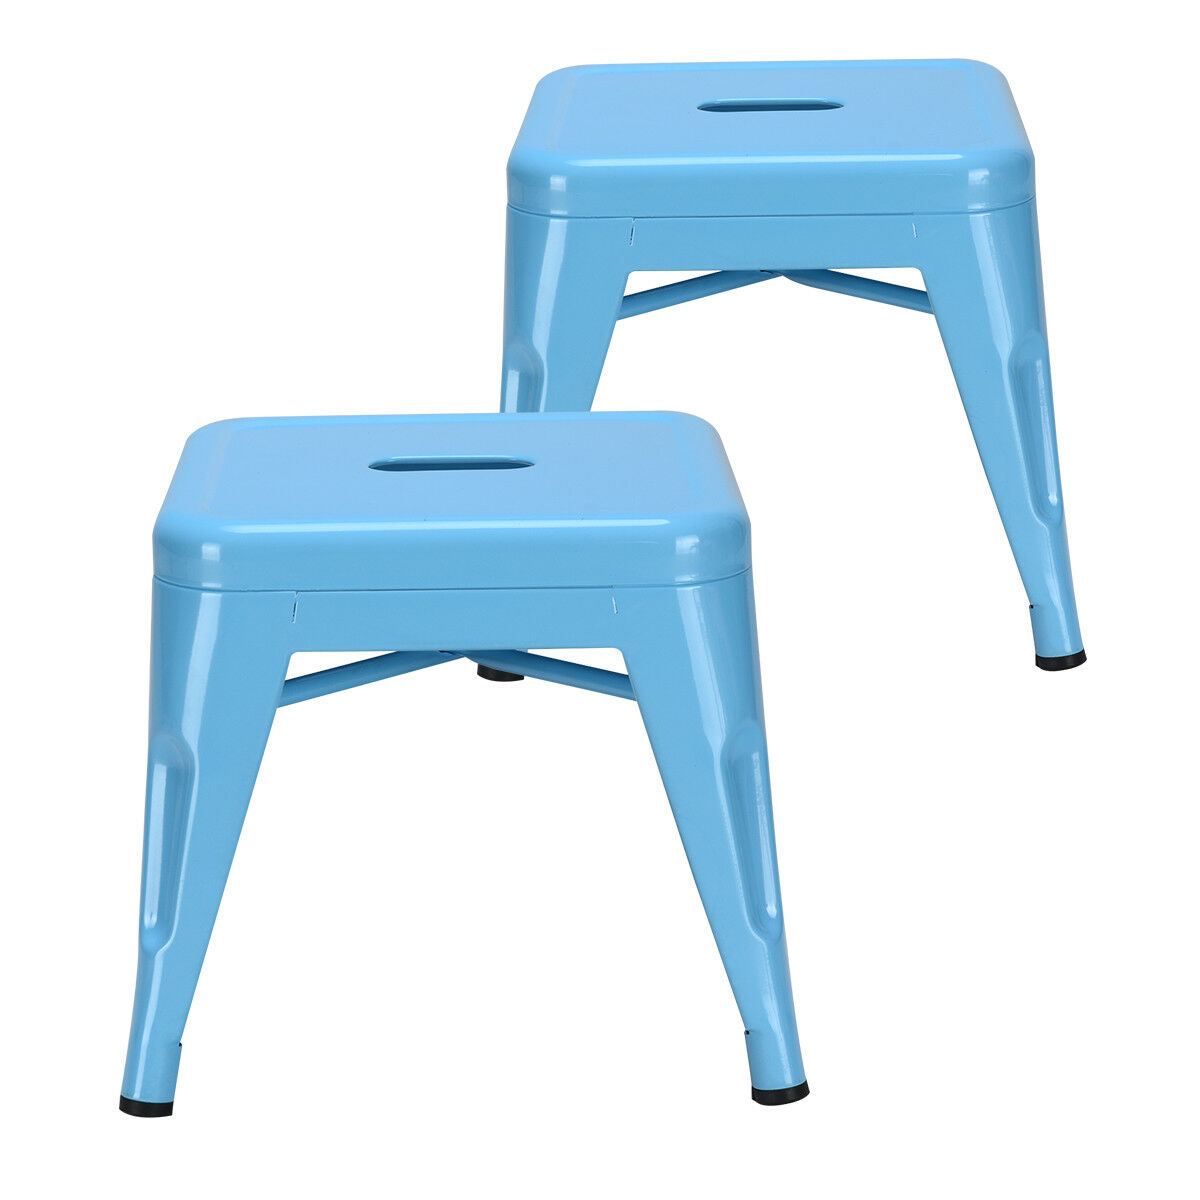 Set Of 2 Tolix Kids Stools Children Toddlers Lightweight Chairs Stackable Blue